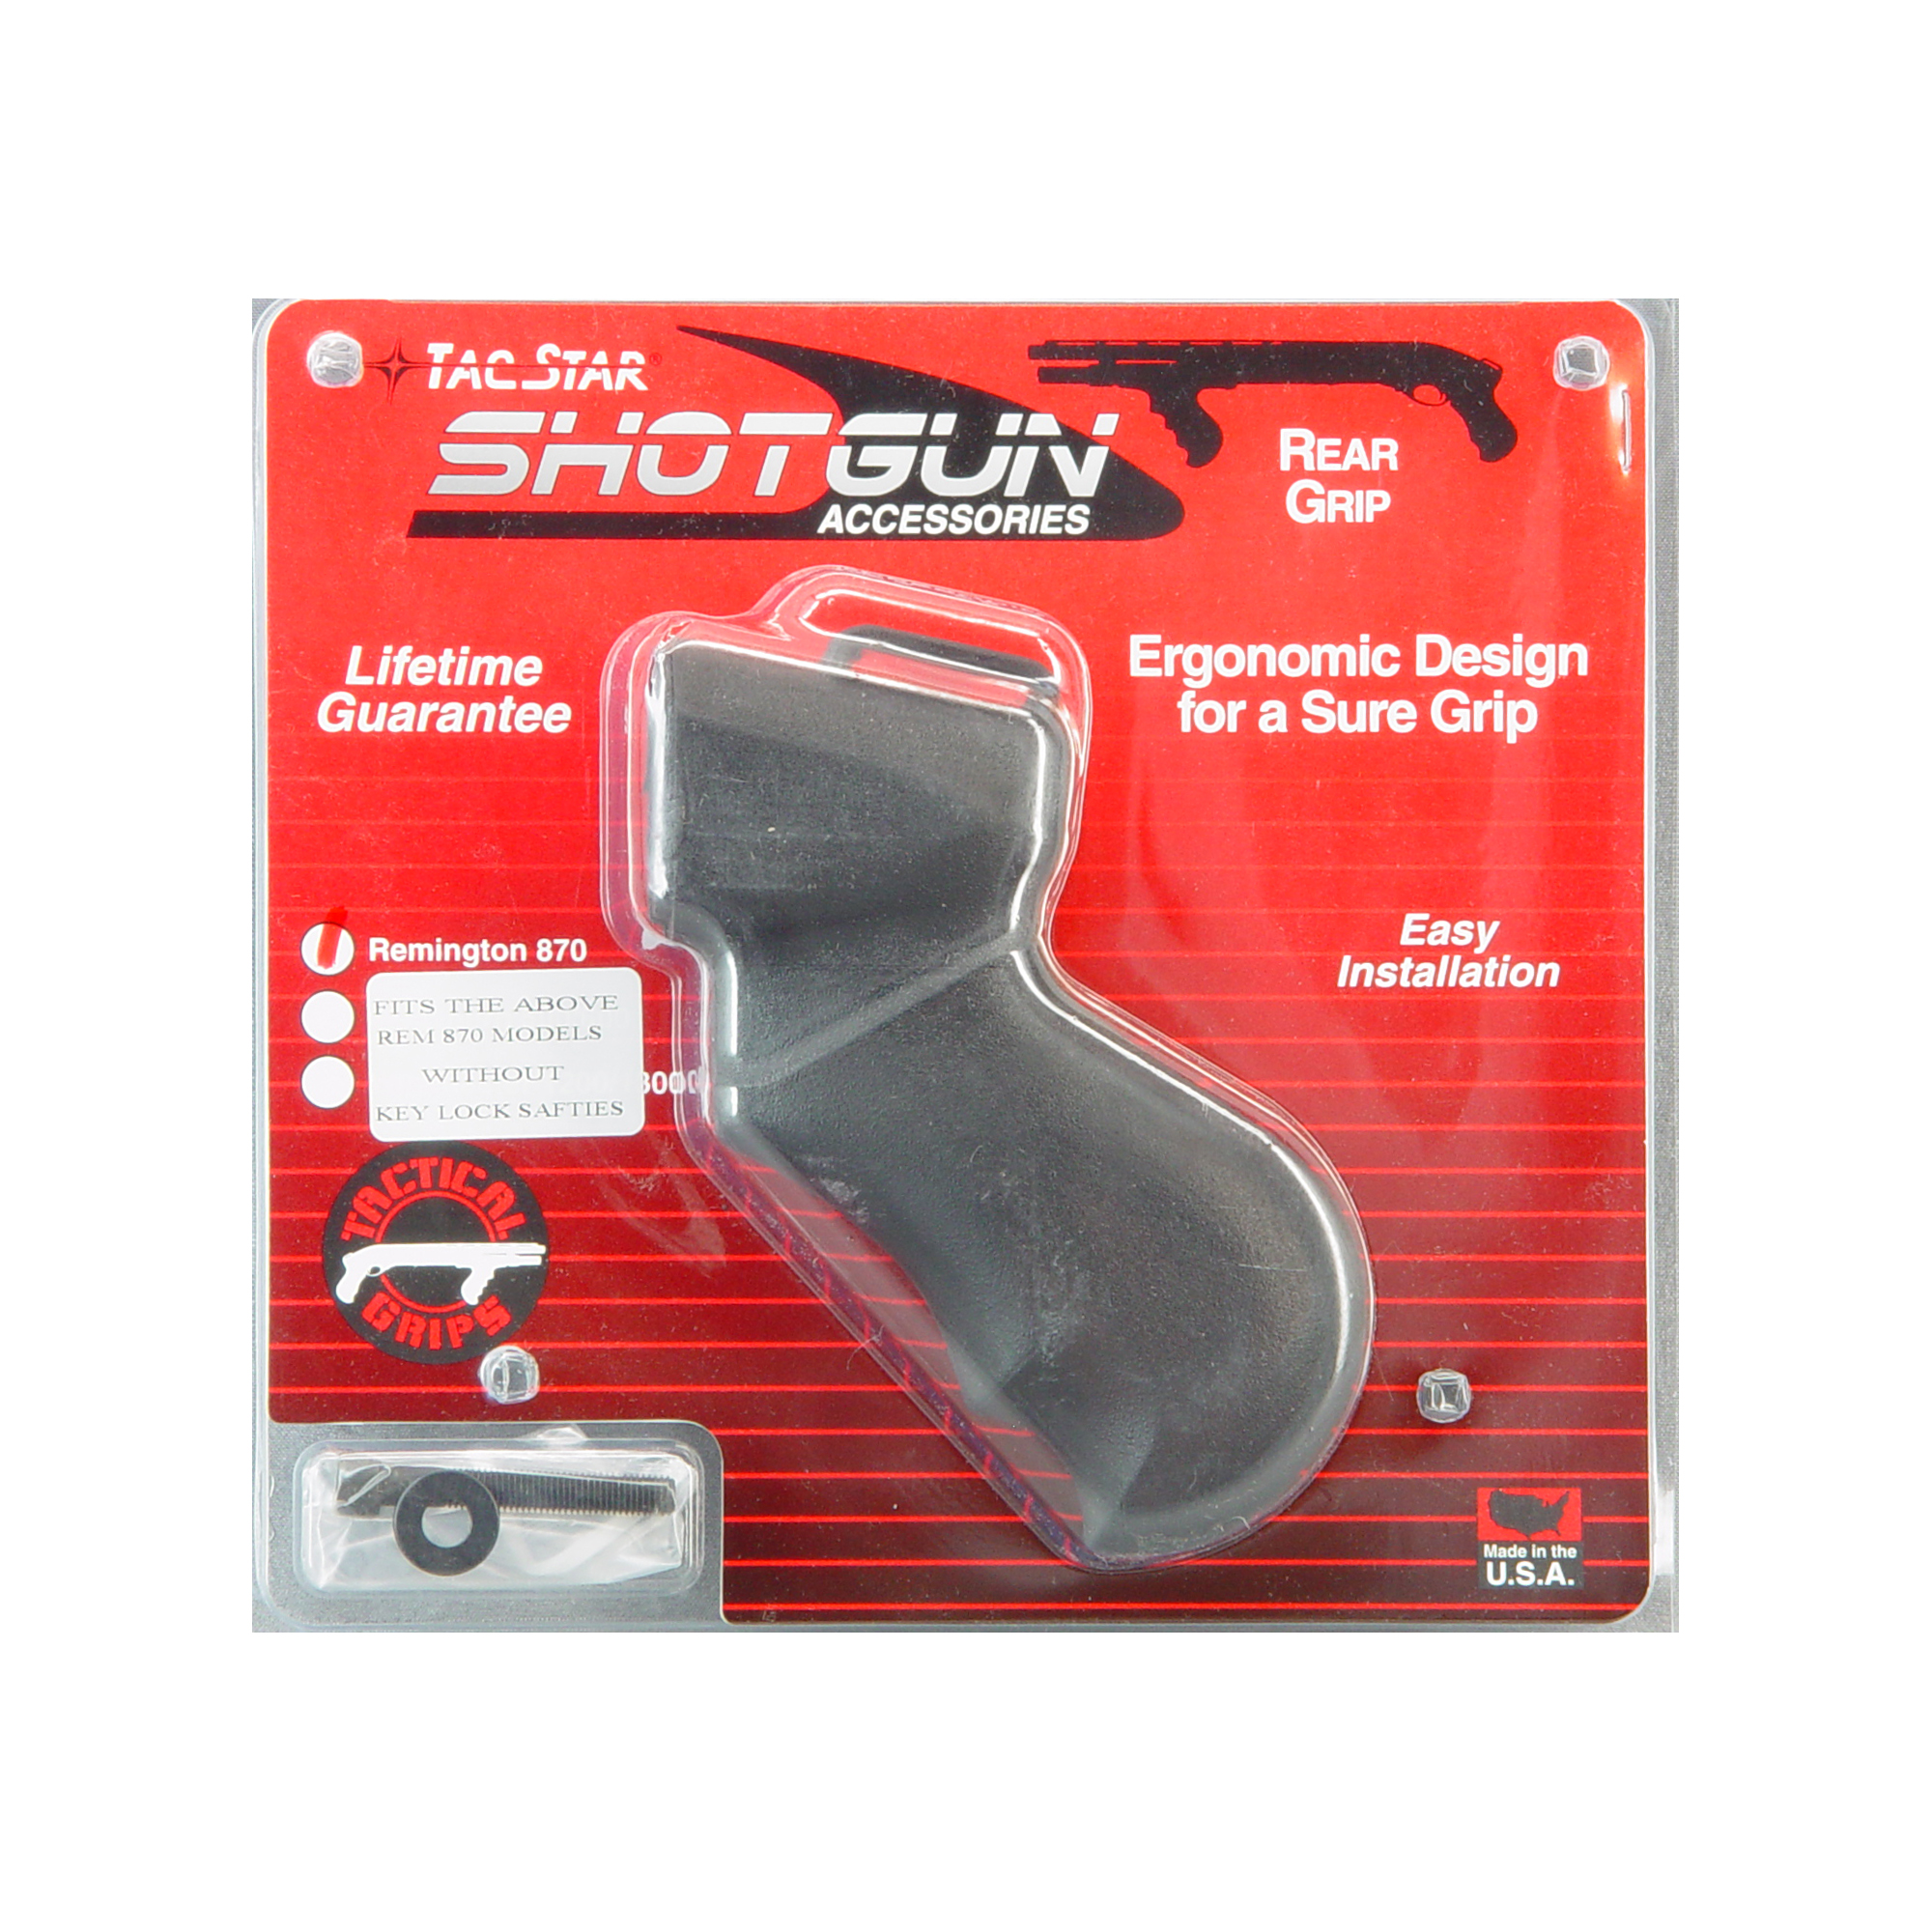 """The TacStar Shotgun Grips were designed with the proper width"""" rearward angle and back swell to distribute recoil energy evenly into both hands resulting in greater speed"""" accuracy and control when shooting. Injection-molded from a high-impact ABS polymer"""" Tactical Shotgun Grip Sets include all the necessary hardware for quick and easy installation and require no alterations to the shotgun. 12 Gauge only. Fits Remington 870. Rear grip only."""